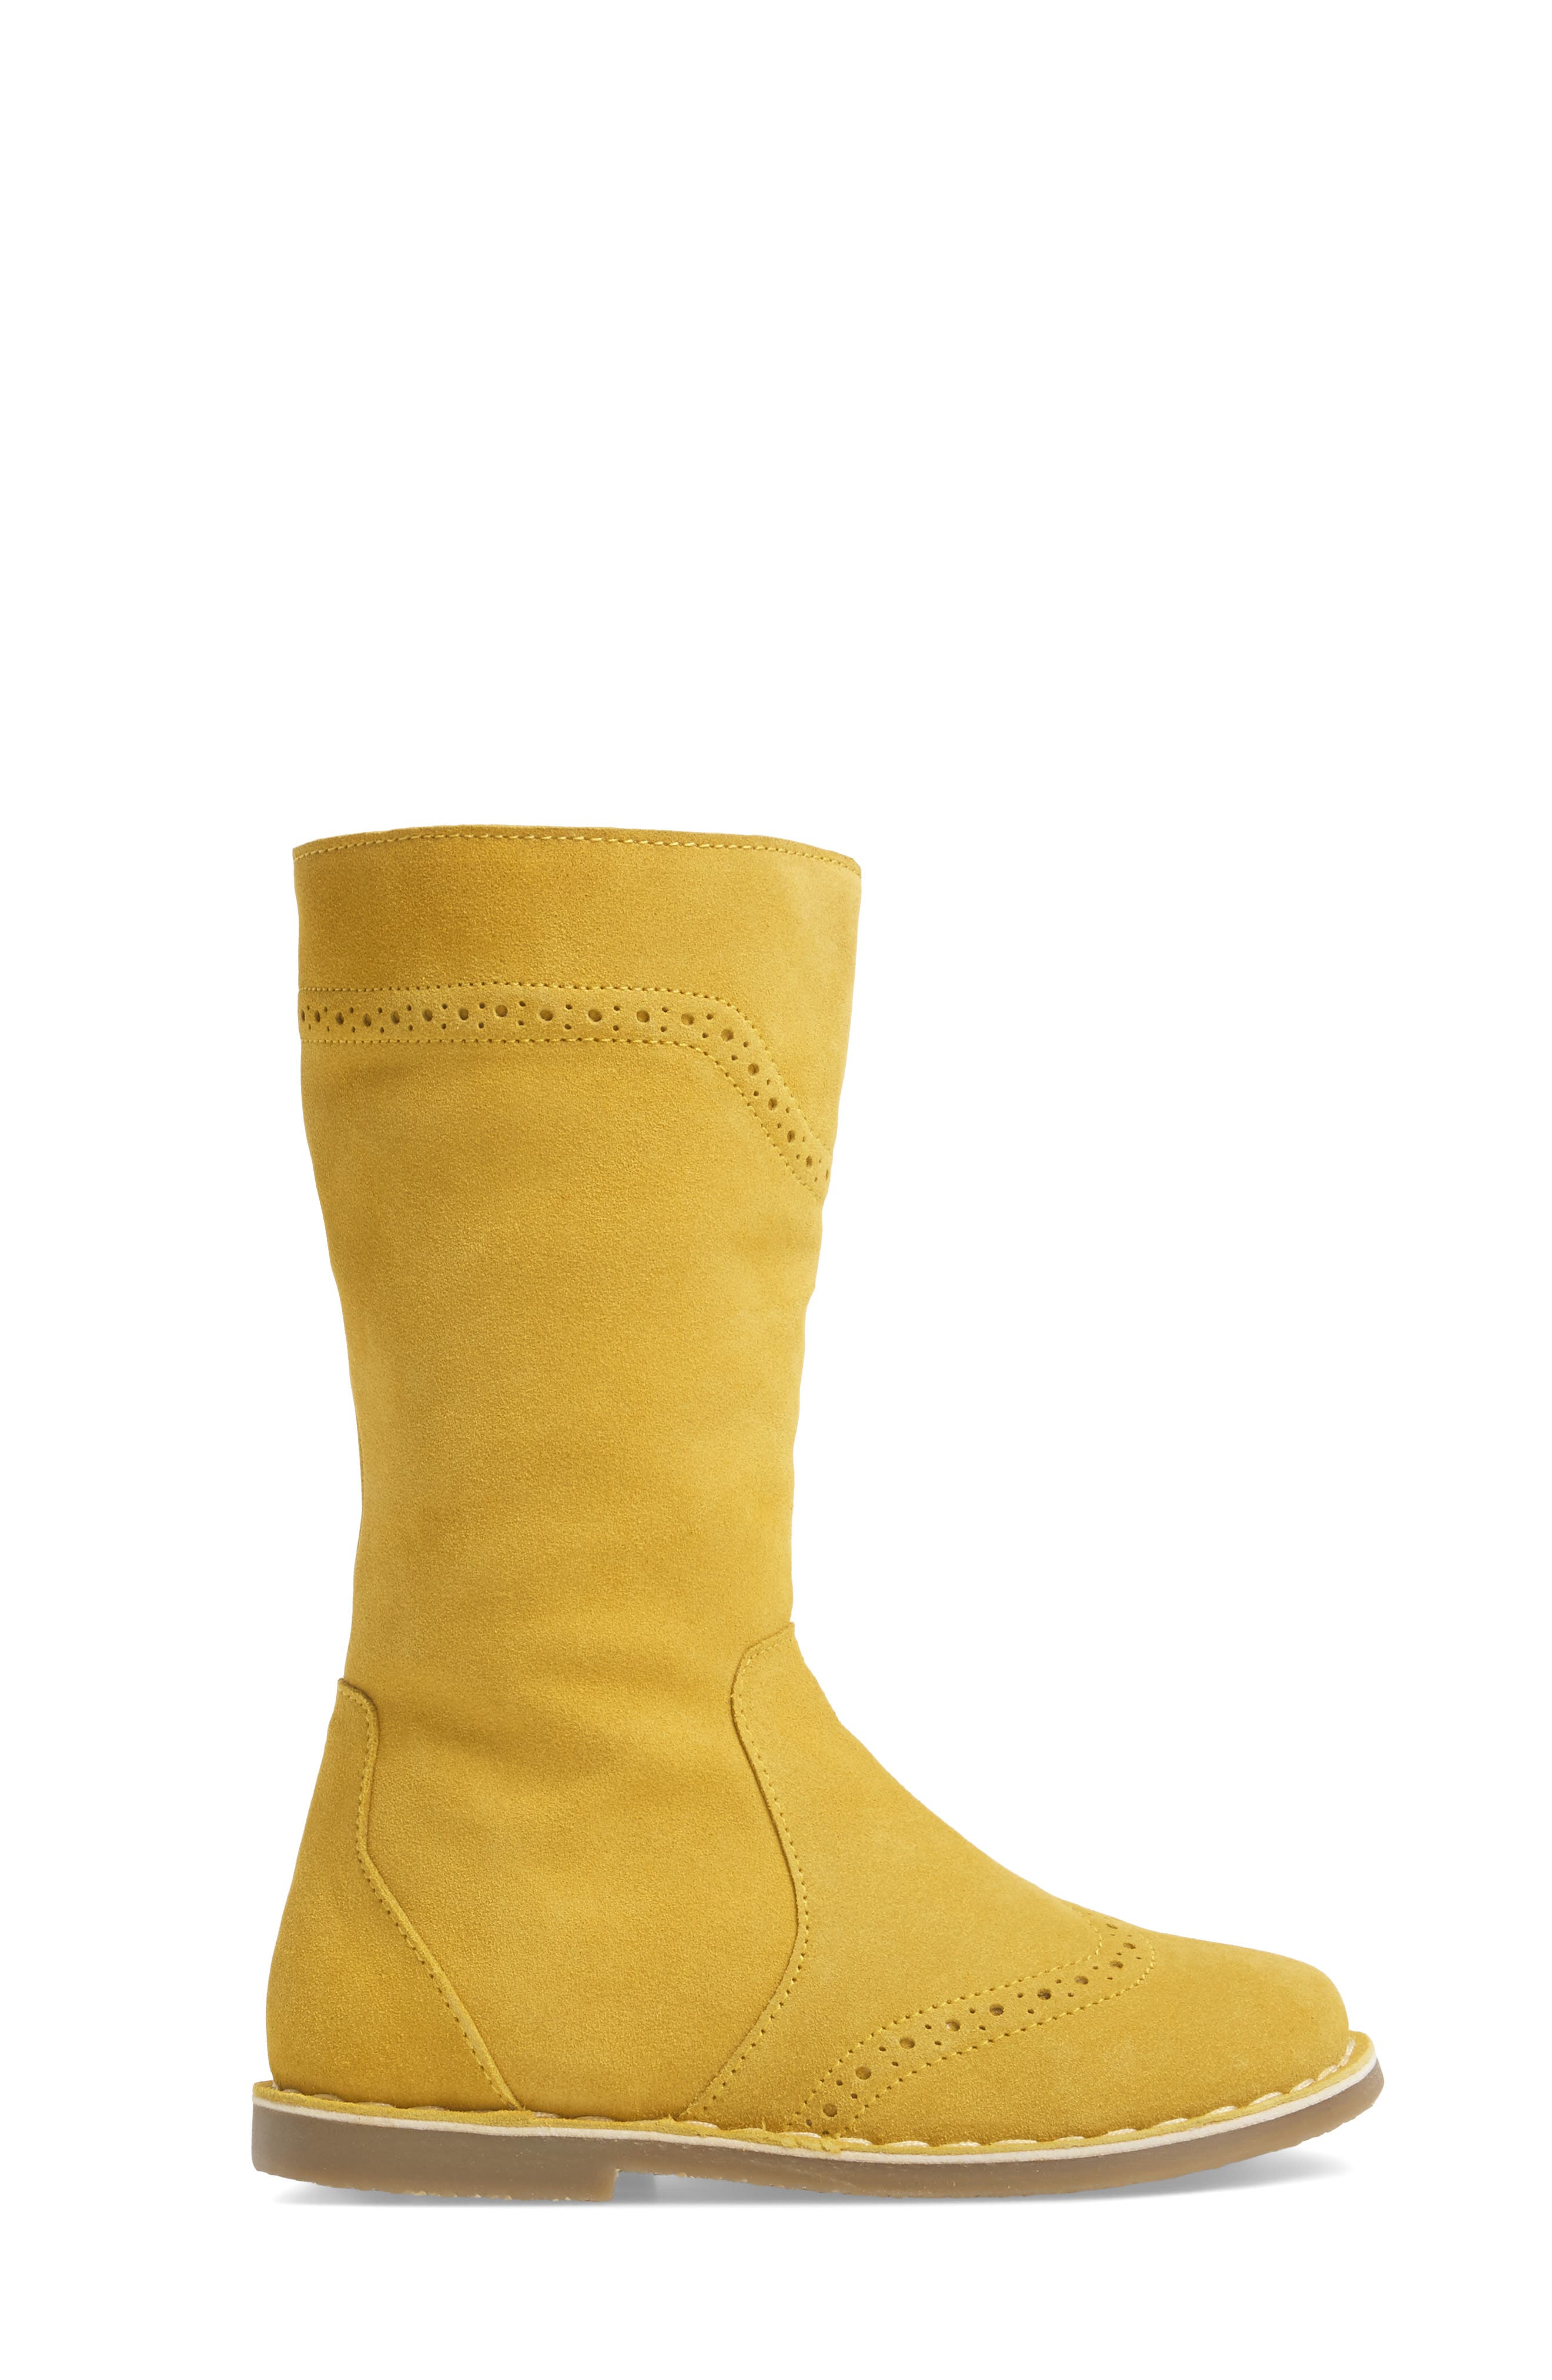 Alternate Image 3  - Mini Boden Tall Leather Boot (Toddler, Little Kid & Big Kid)